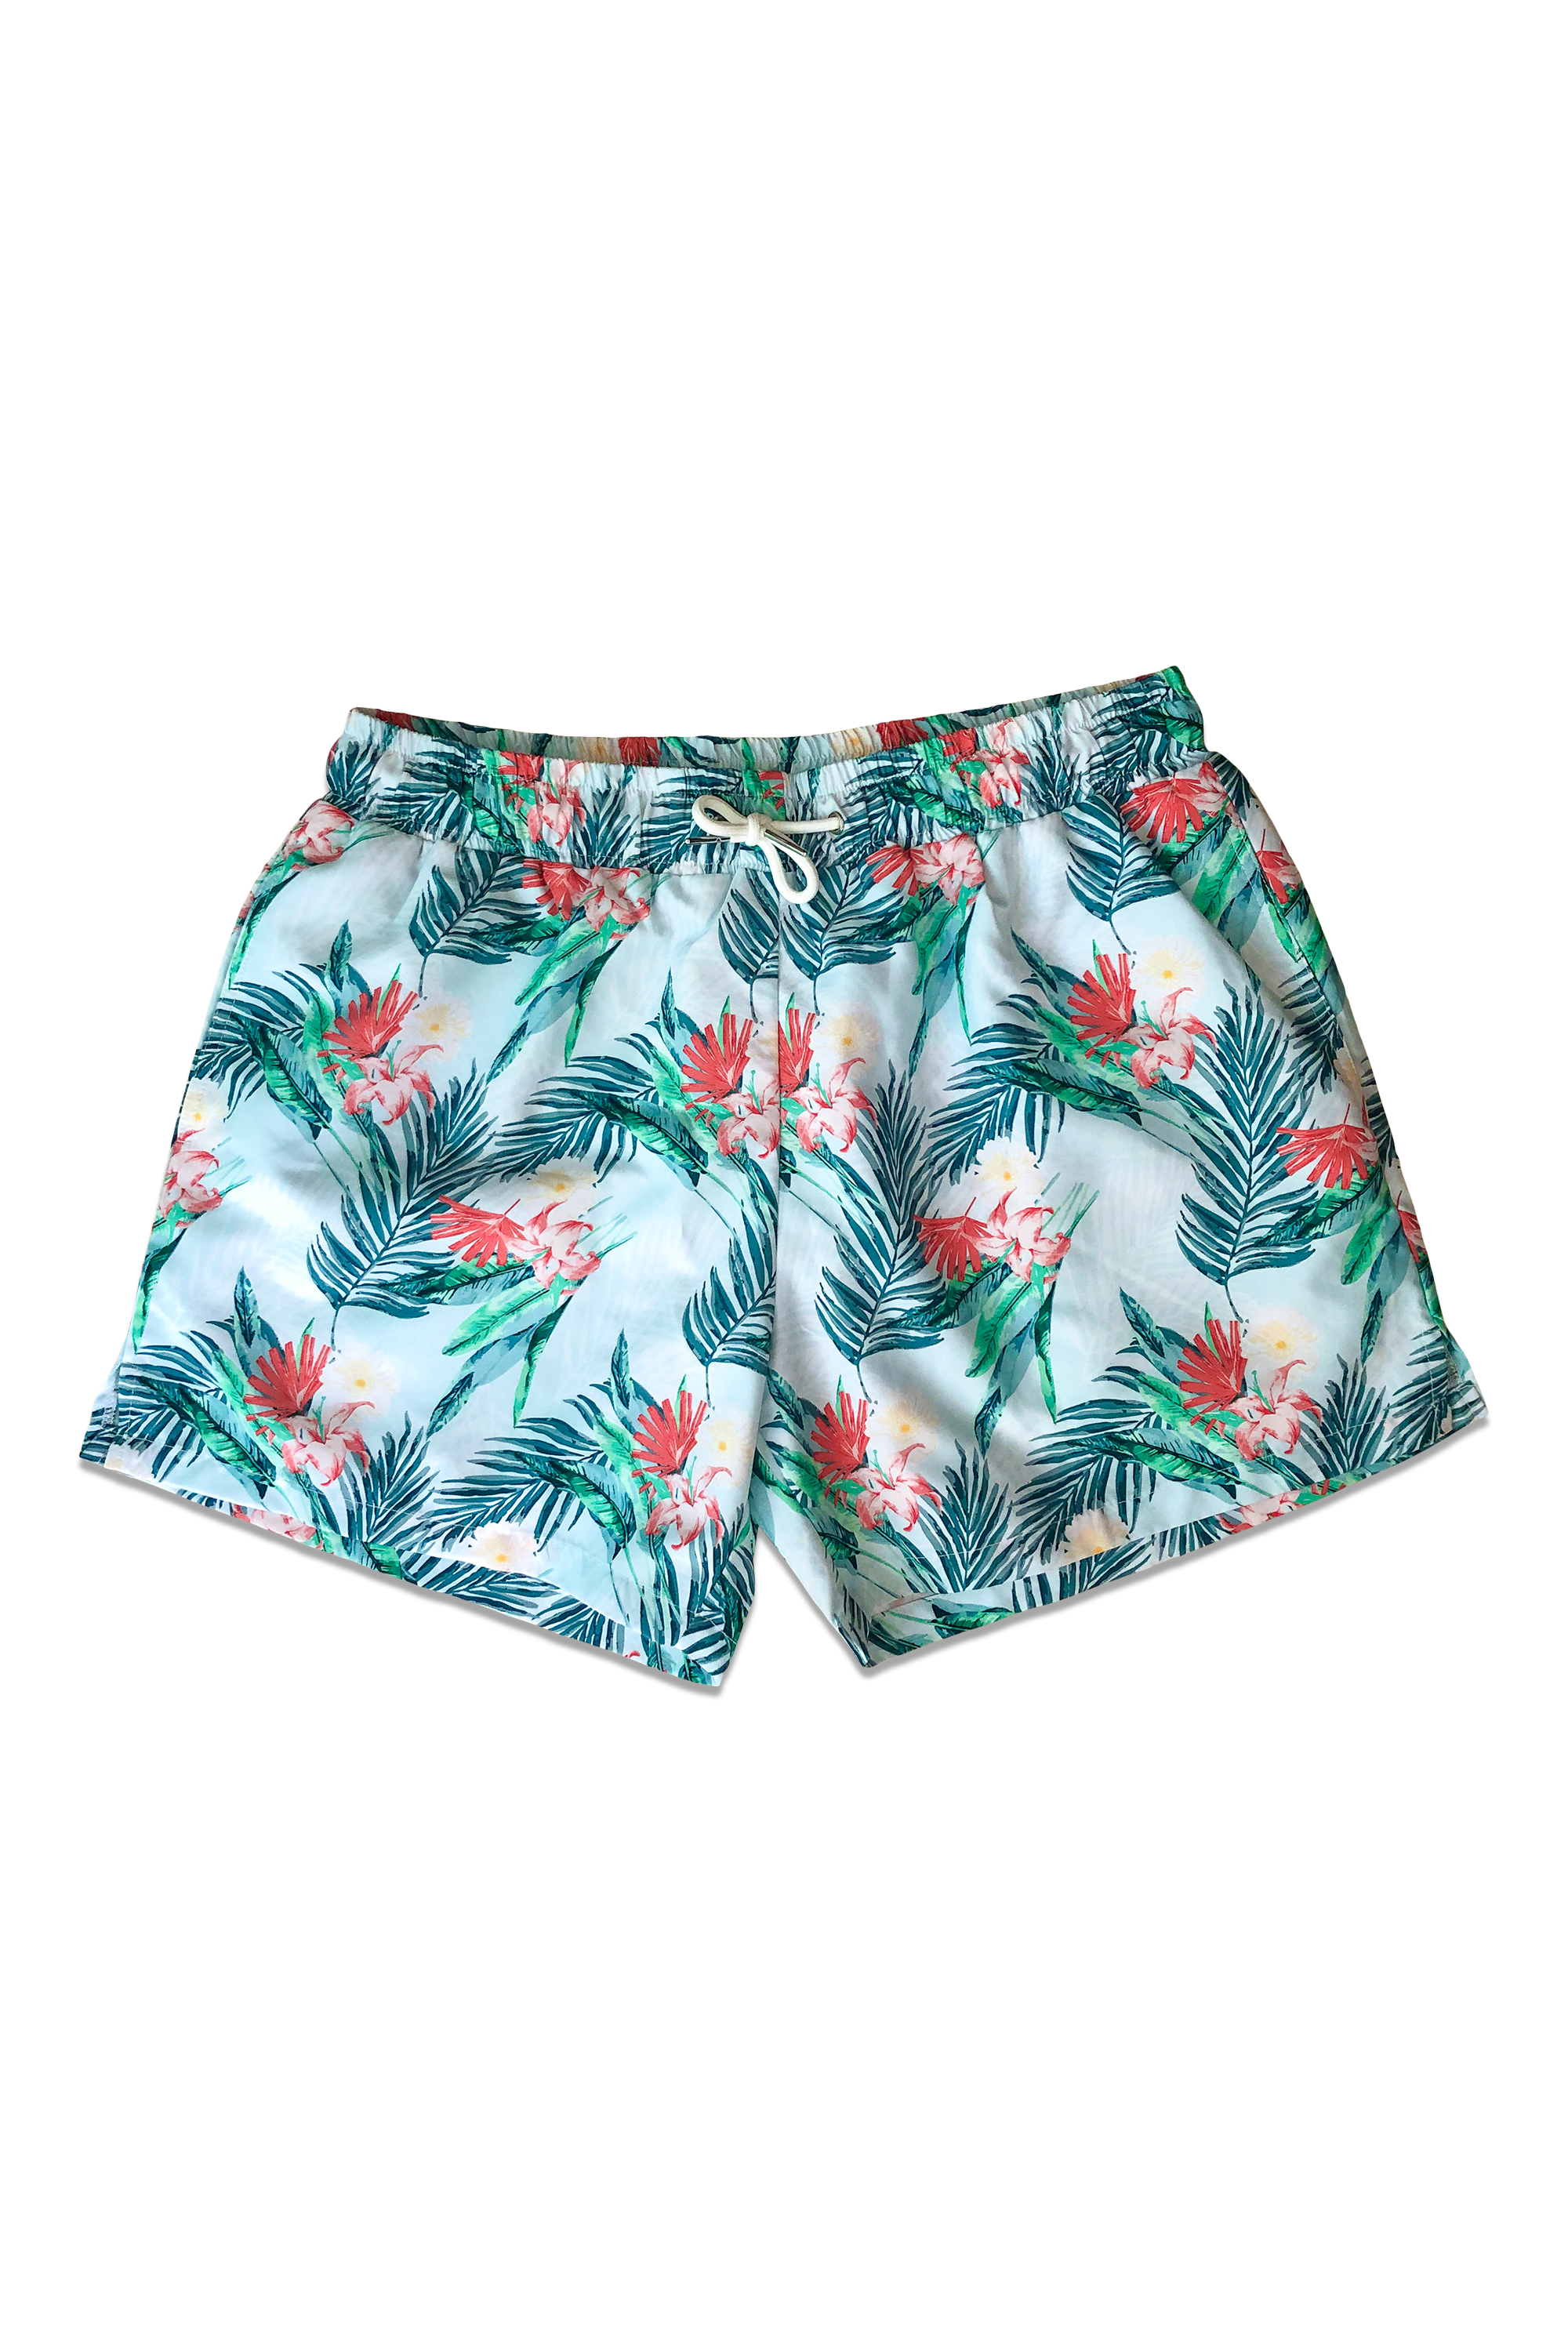 *PREORDER* Southport Men's Swim Trunks